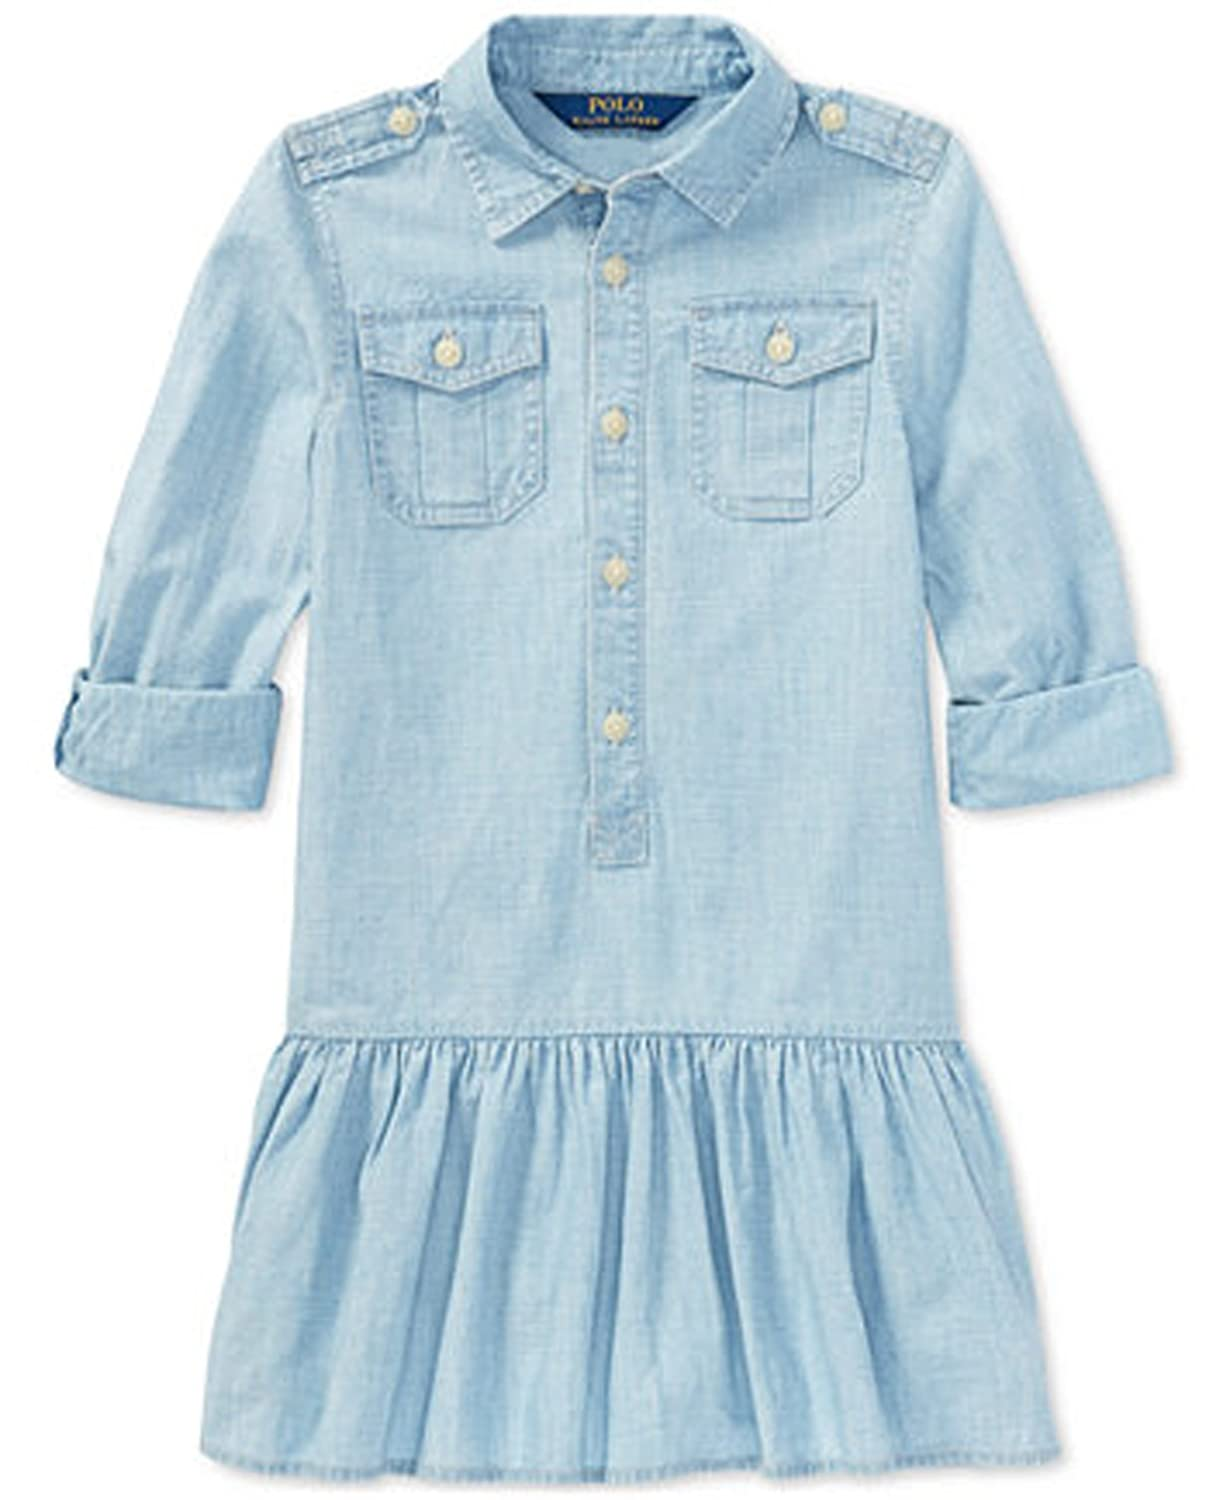 5c5bd26127 Amazon.com  RALPH LAUREN Polo Girls Chambray Cotton Shirtdress